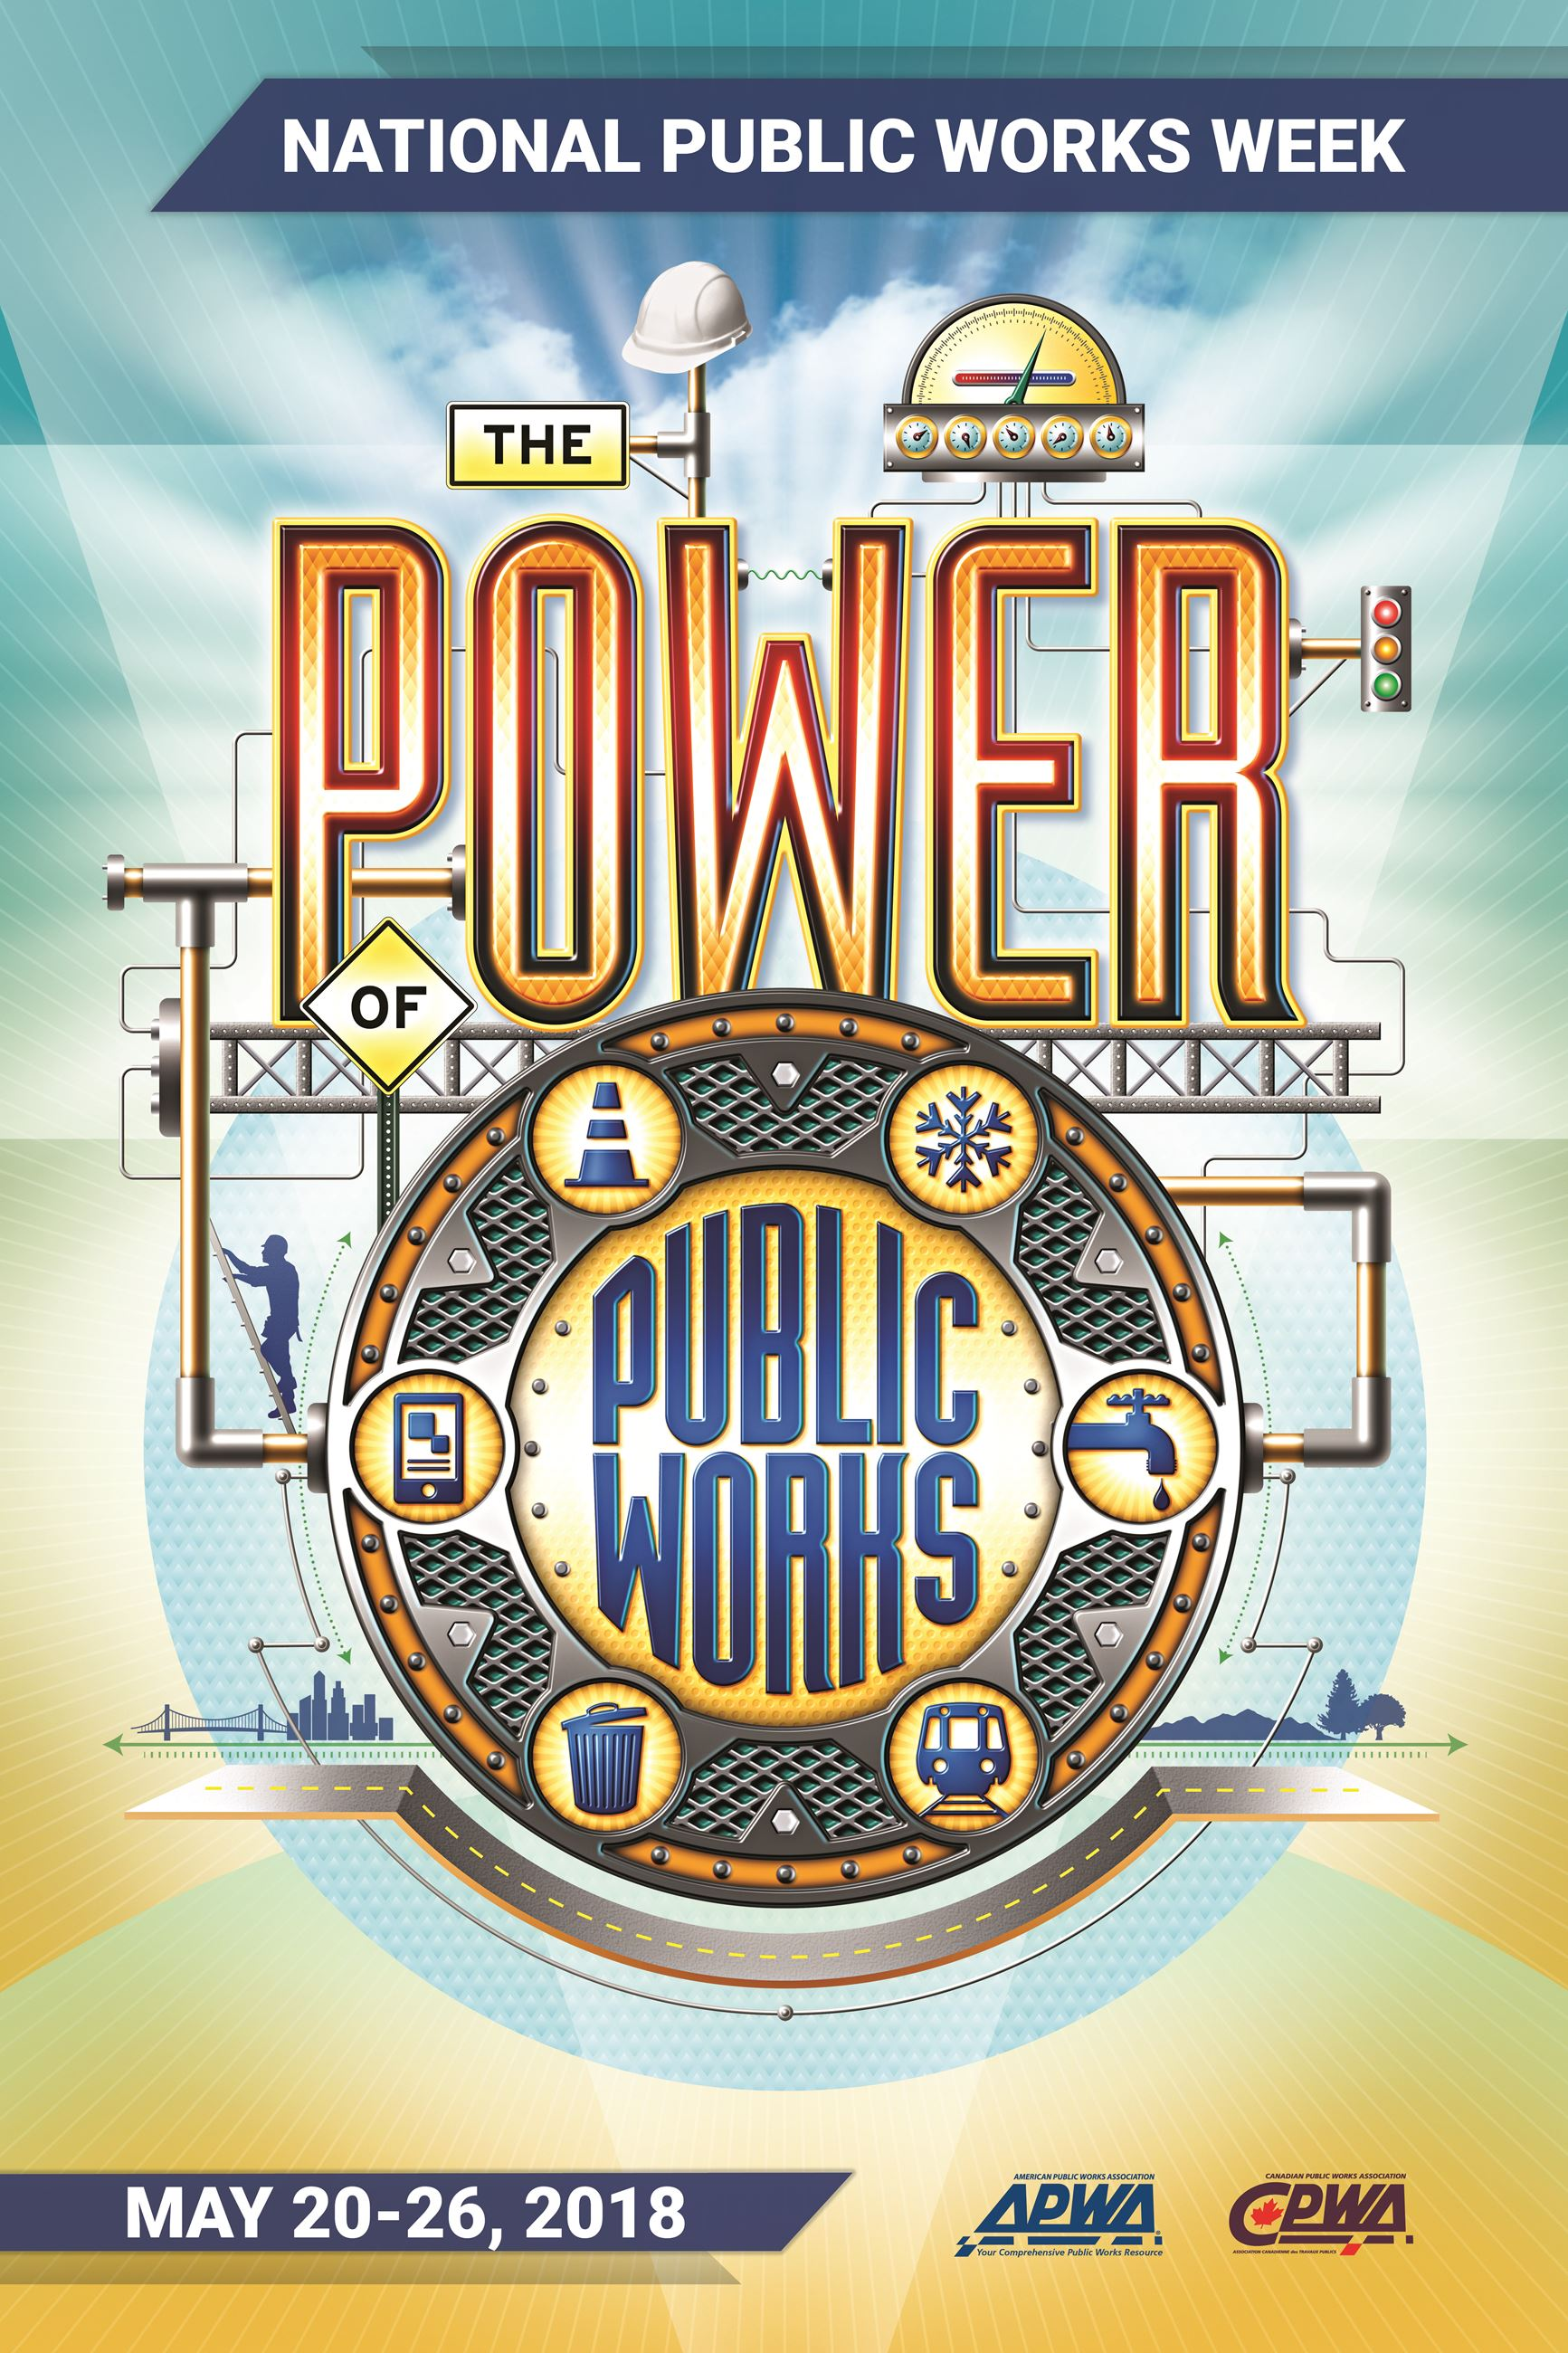 Power of Public Works Week Poster